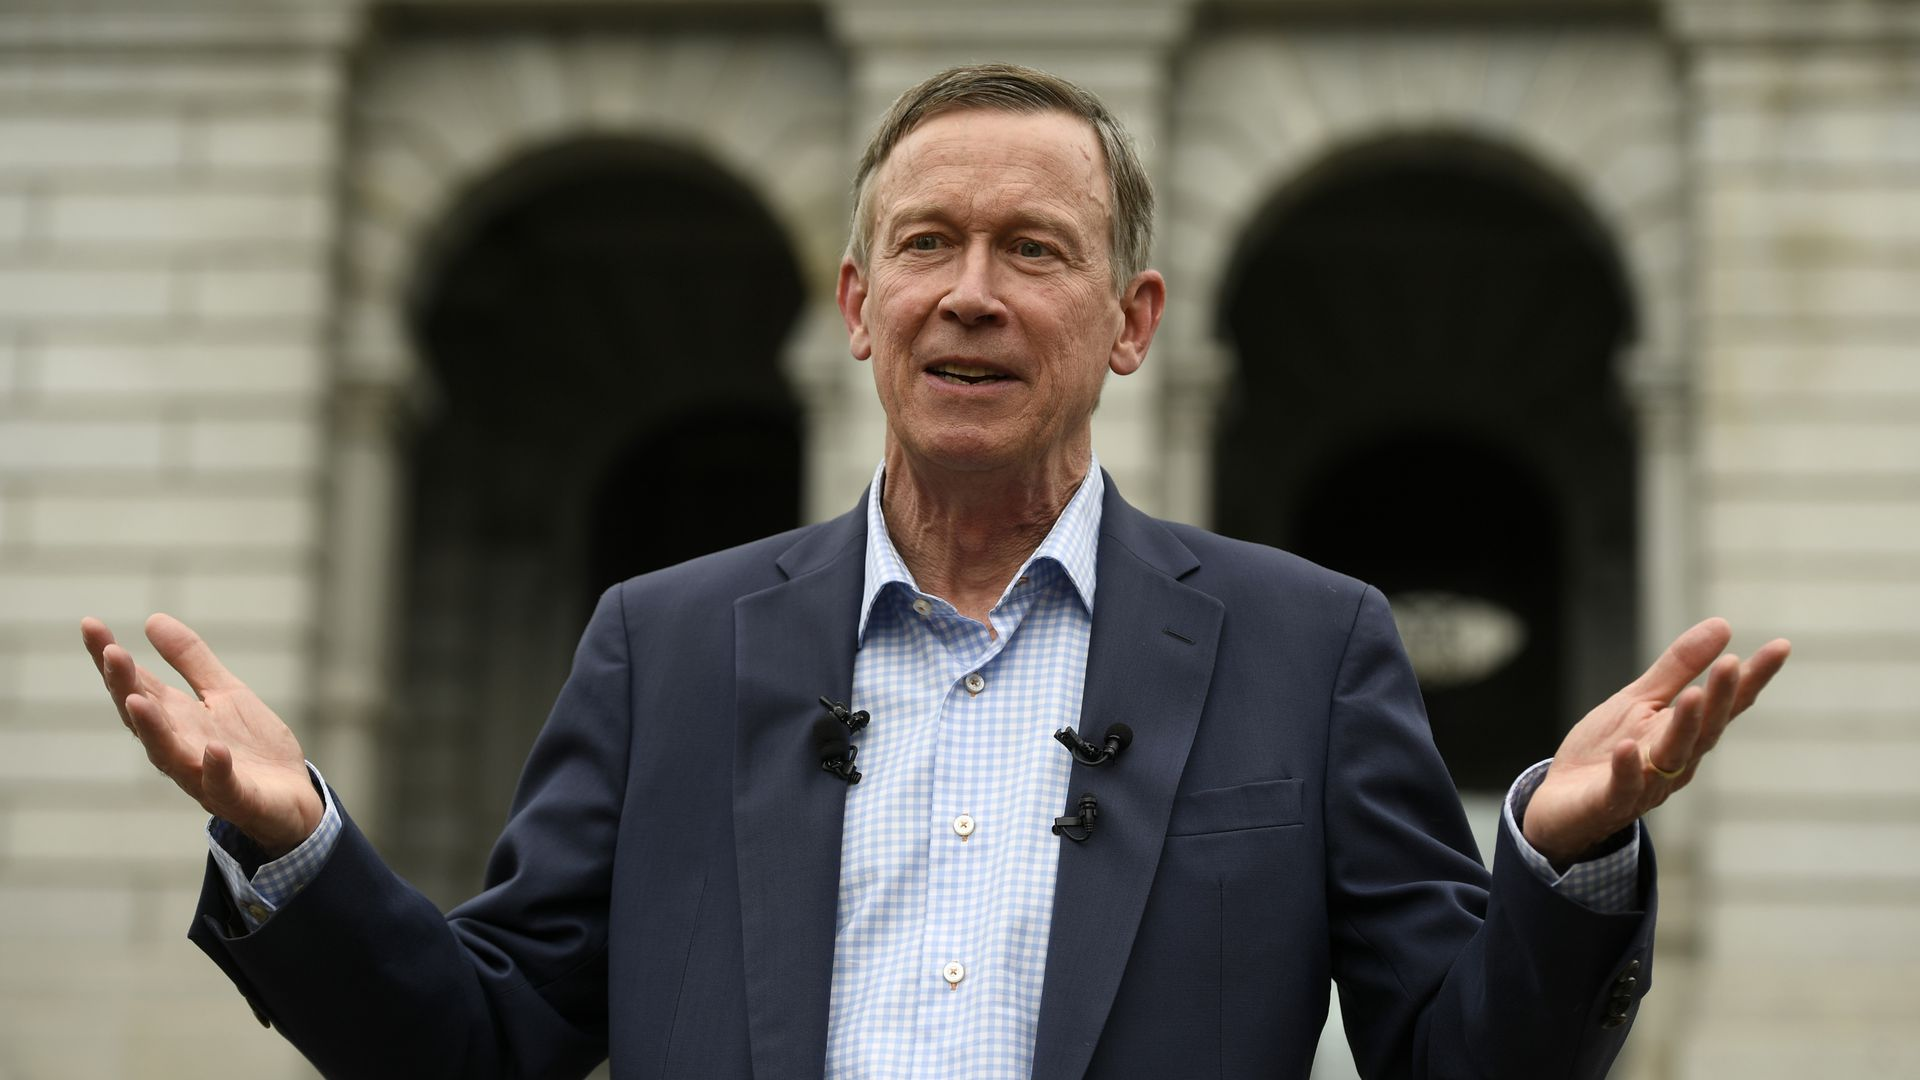 John Hickenlooper announces Senate run in Colorado one week after ending 2020 campaign